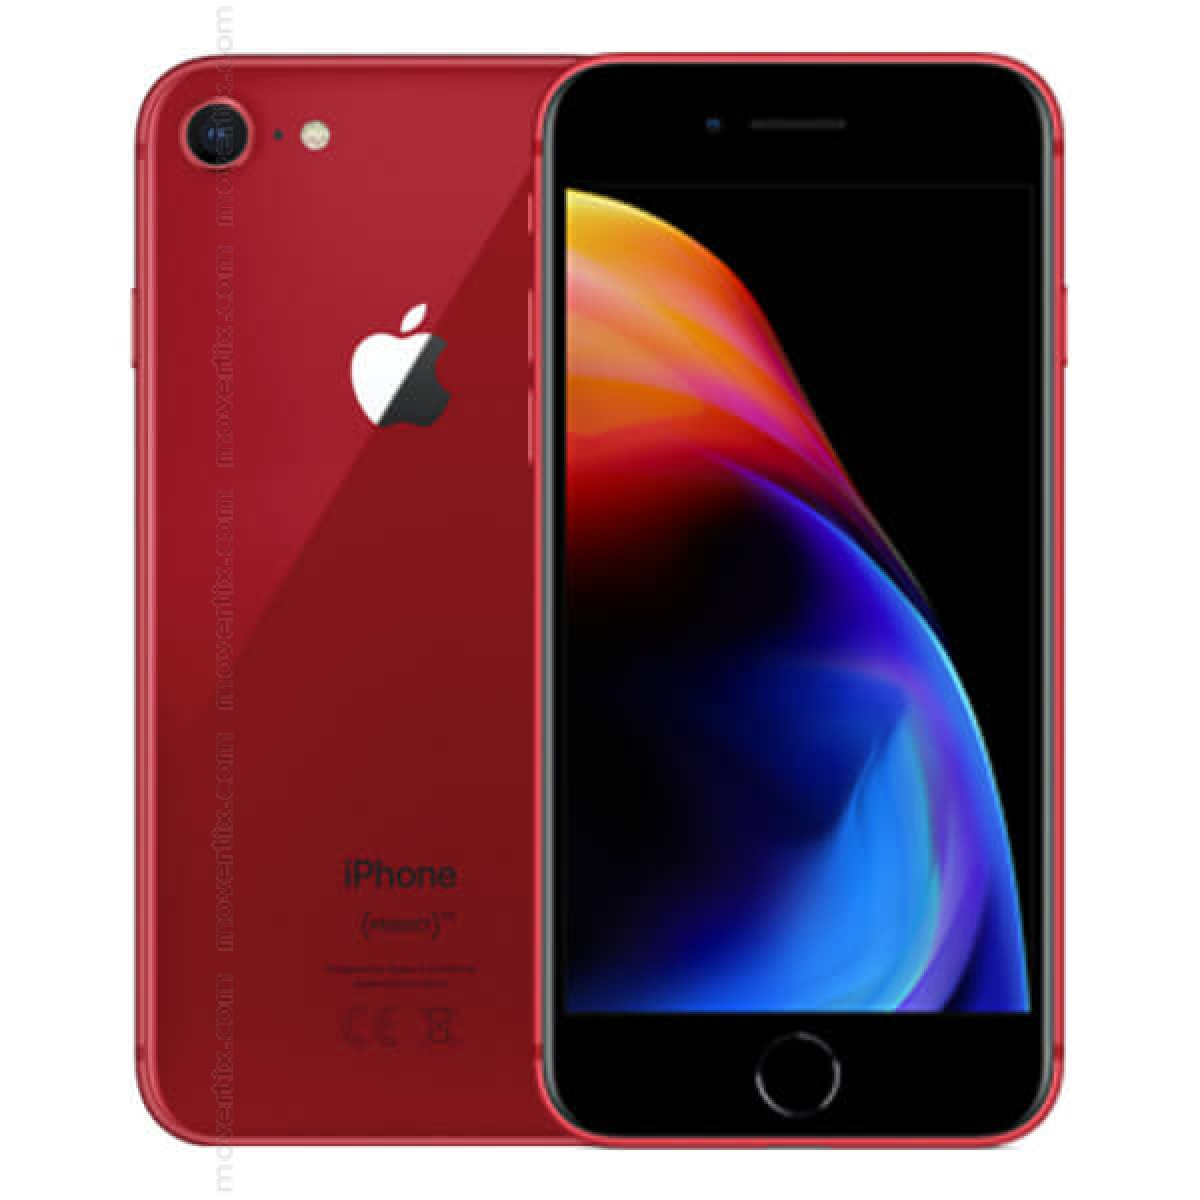 Tiendas De Moviles Libres Apple Iphone 8 En Rojo De 256gb Mrrn2fs A 0190198744746